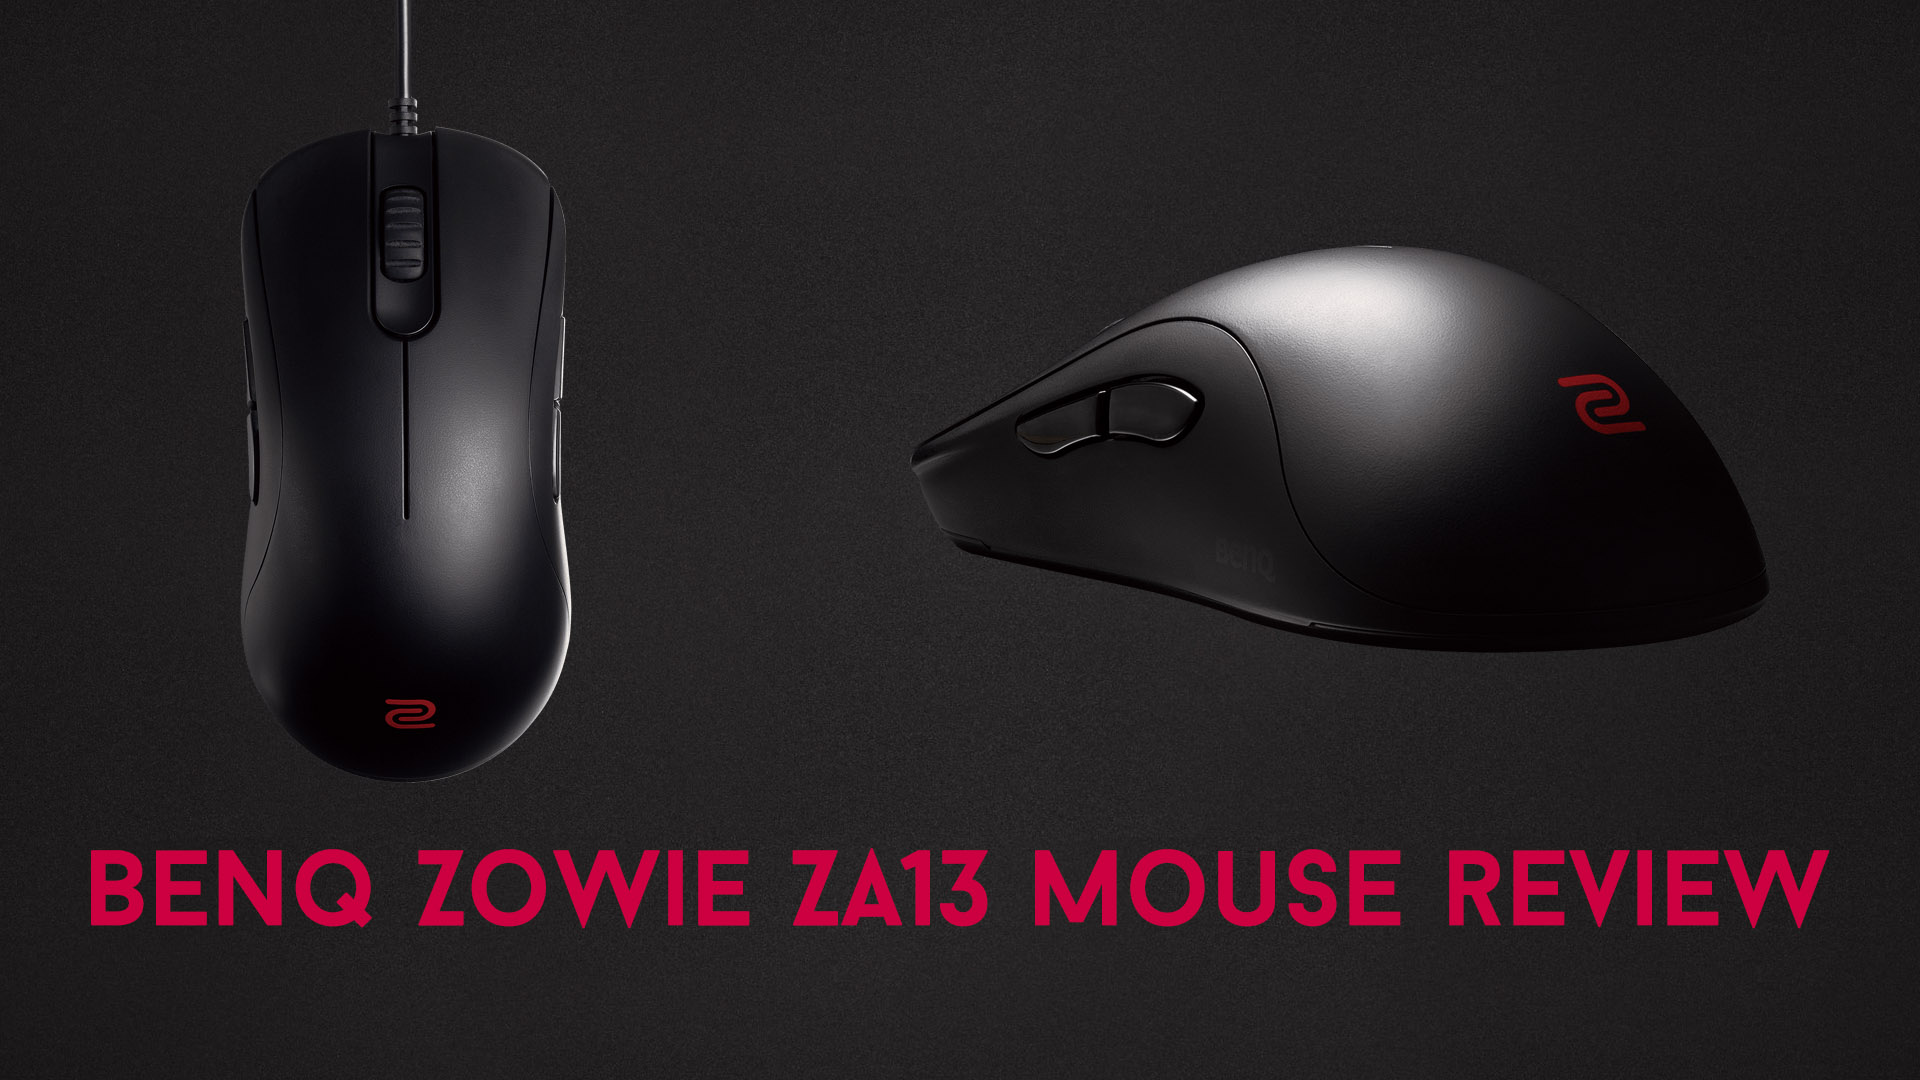 Zowie ZA13 Mouse Review